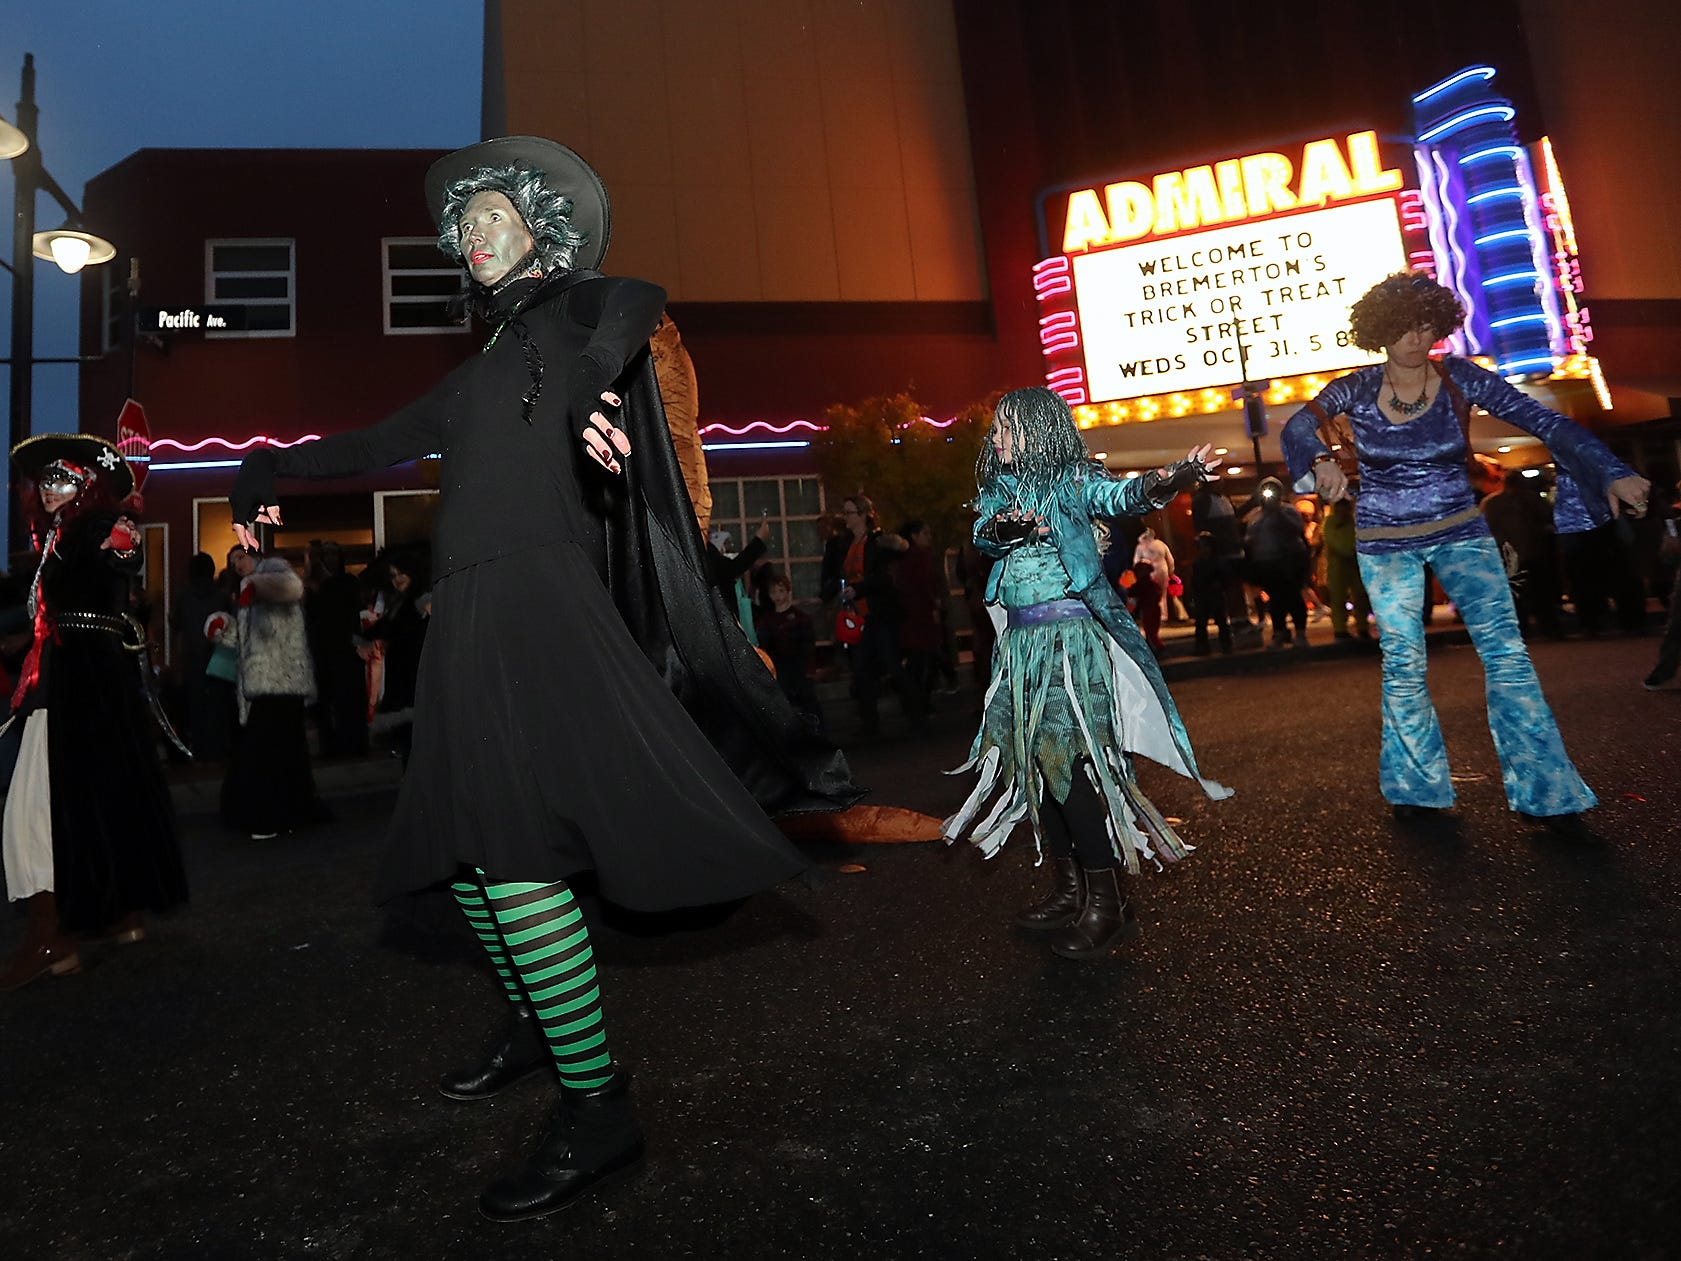 Downtown Bremerton's Trick or Treat Street on Wednesday, October 31, 2018.